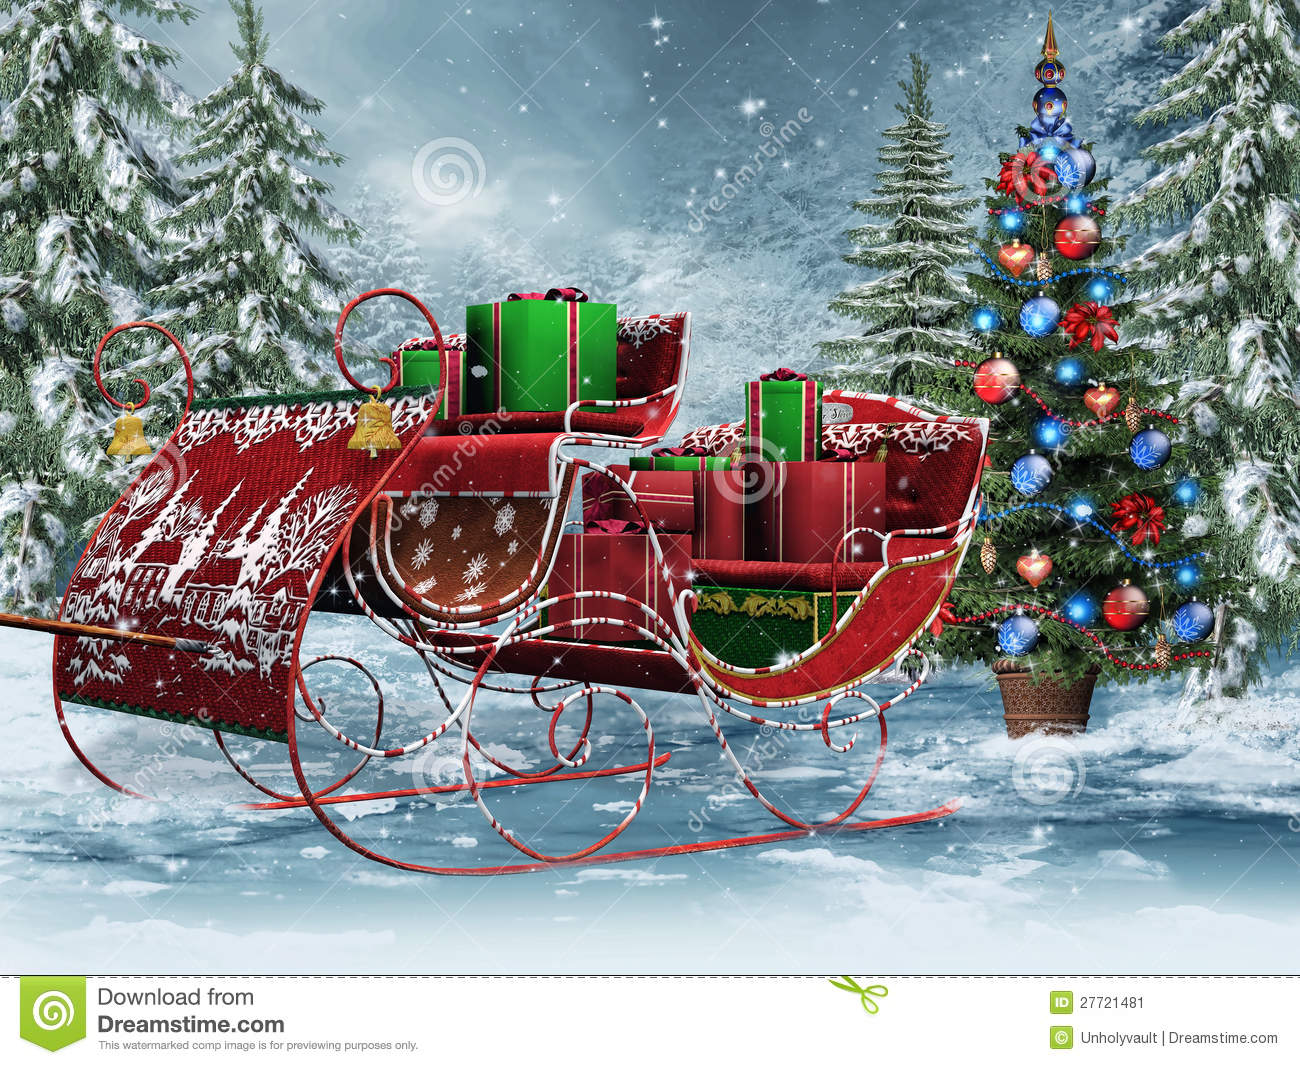 Vintage Sleigh With Gifts Stock Image Image 27721481